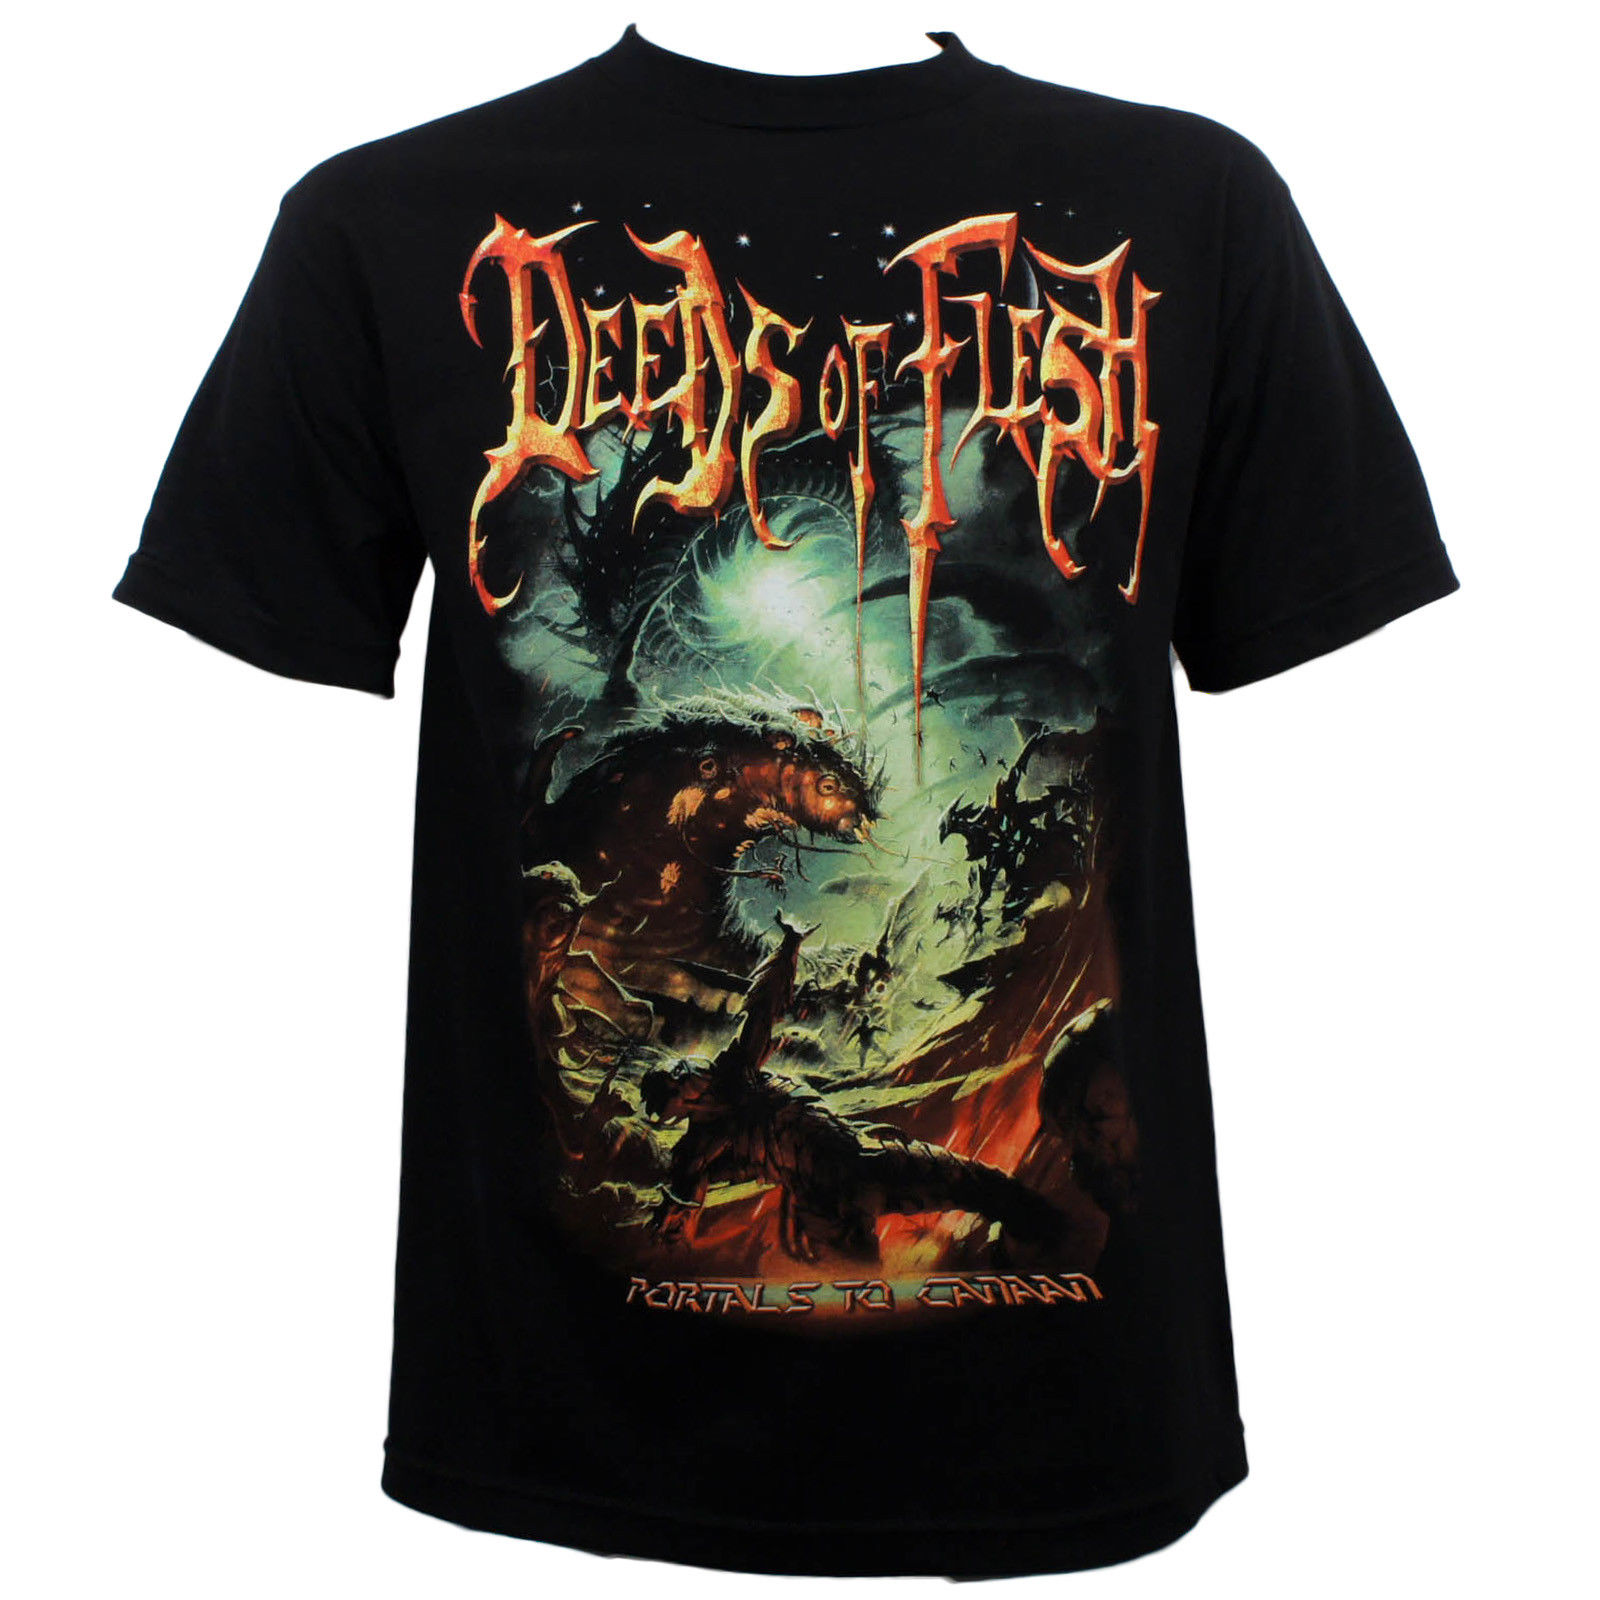 Authentic Deeds of Flesh Band Portals To Canaan Album Cover T-Shirt 2018 New Fashion MenS T-Shirts Short Sleeve